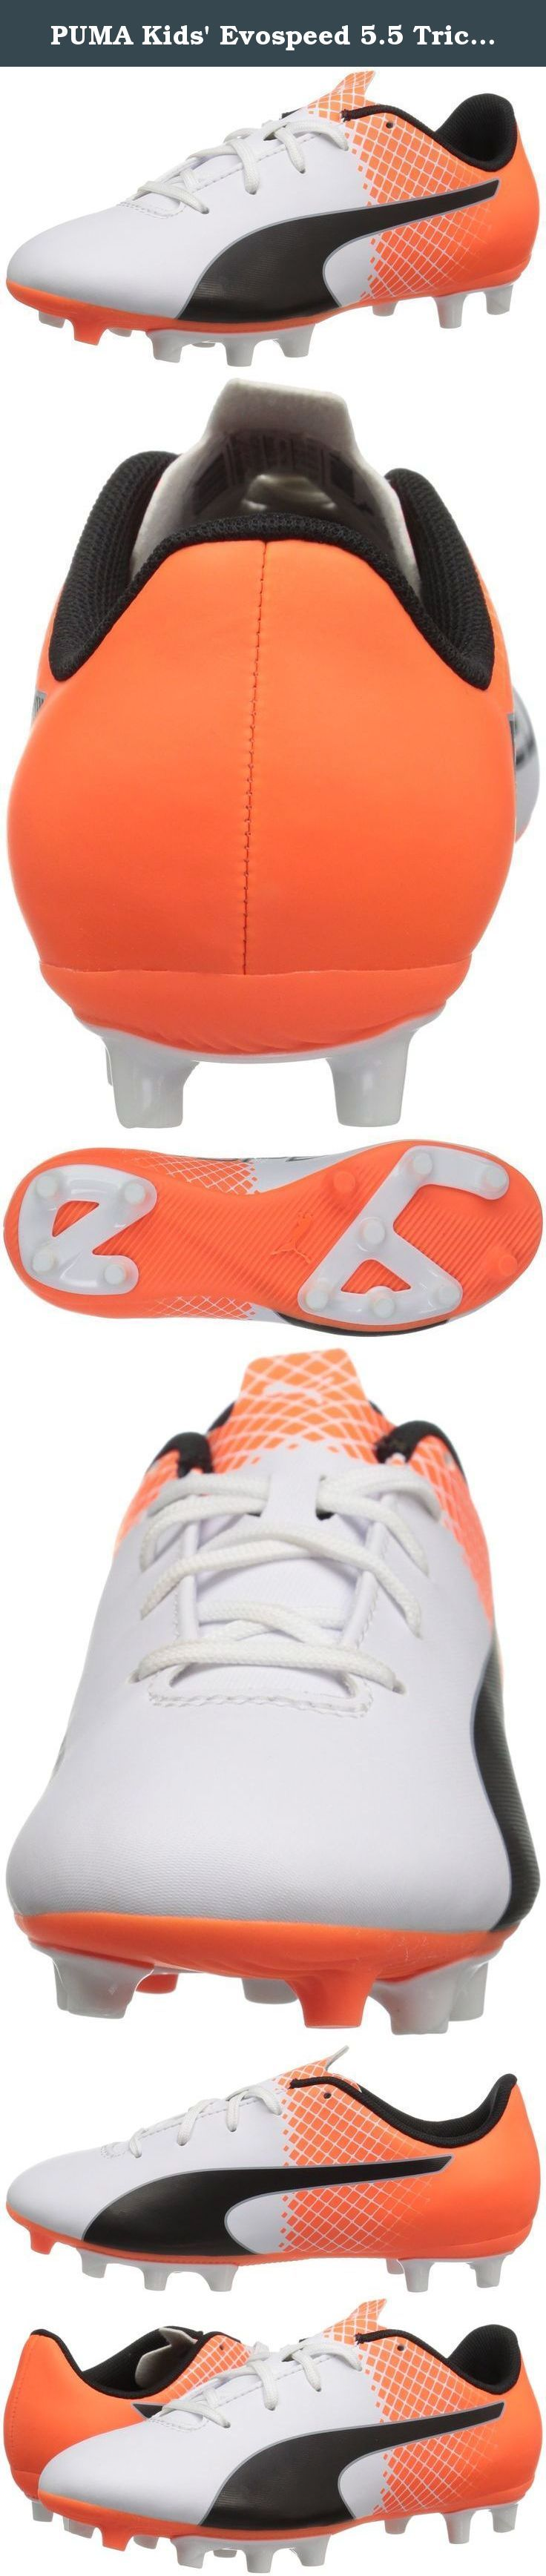 PUMA Kids' Evospeed 5.5 Tricks FG JR Soccer Shoe, Puma White/Puma Black, 5 M US Big Kid. The evospeed 5.5 tricks Jr is an entry price level junior football boot that combines comfort and durability with a fresh design. The soft yet durable synthetic leather, the improved anatomic fit and the central lacing all add to the comfort of this low maintenance and durable boot. The tricks execution guarantees for maximized on-pitch visibility.